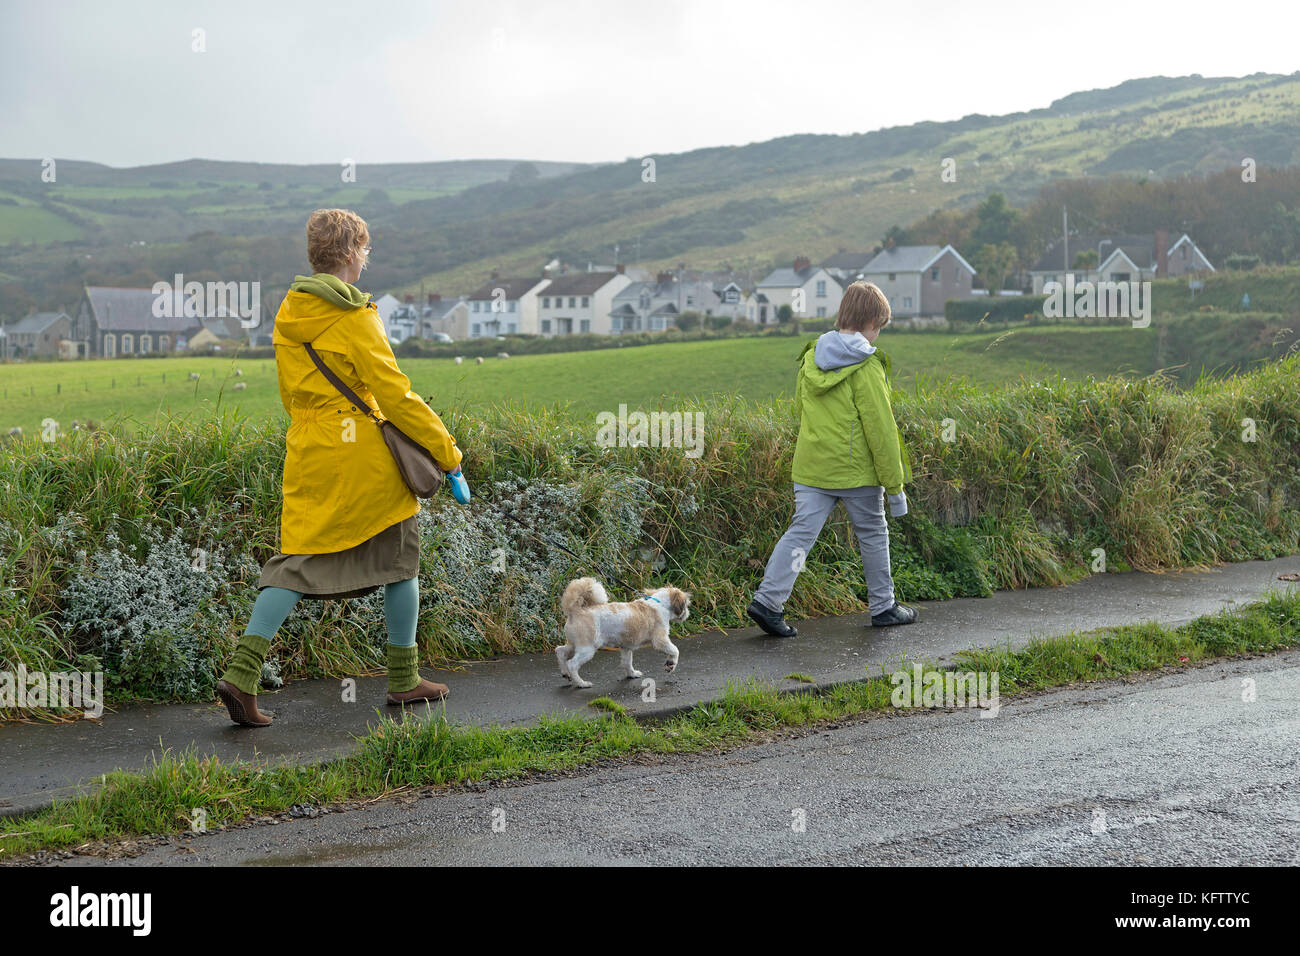 family walking dog, Ballintoy, Co. Antrim, Northern Ireland - Stock Image